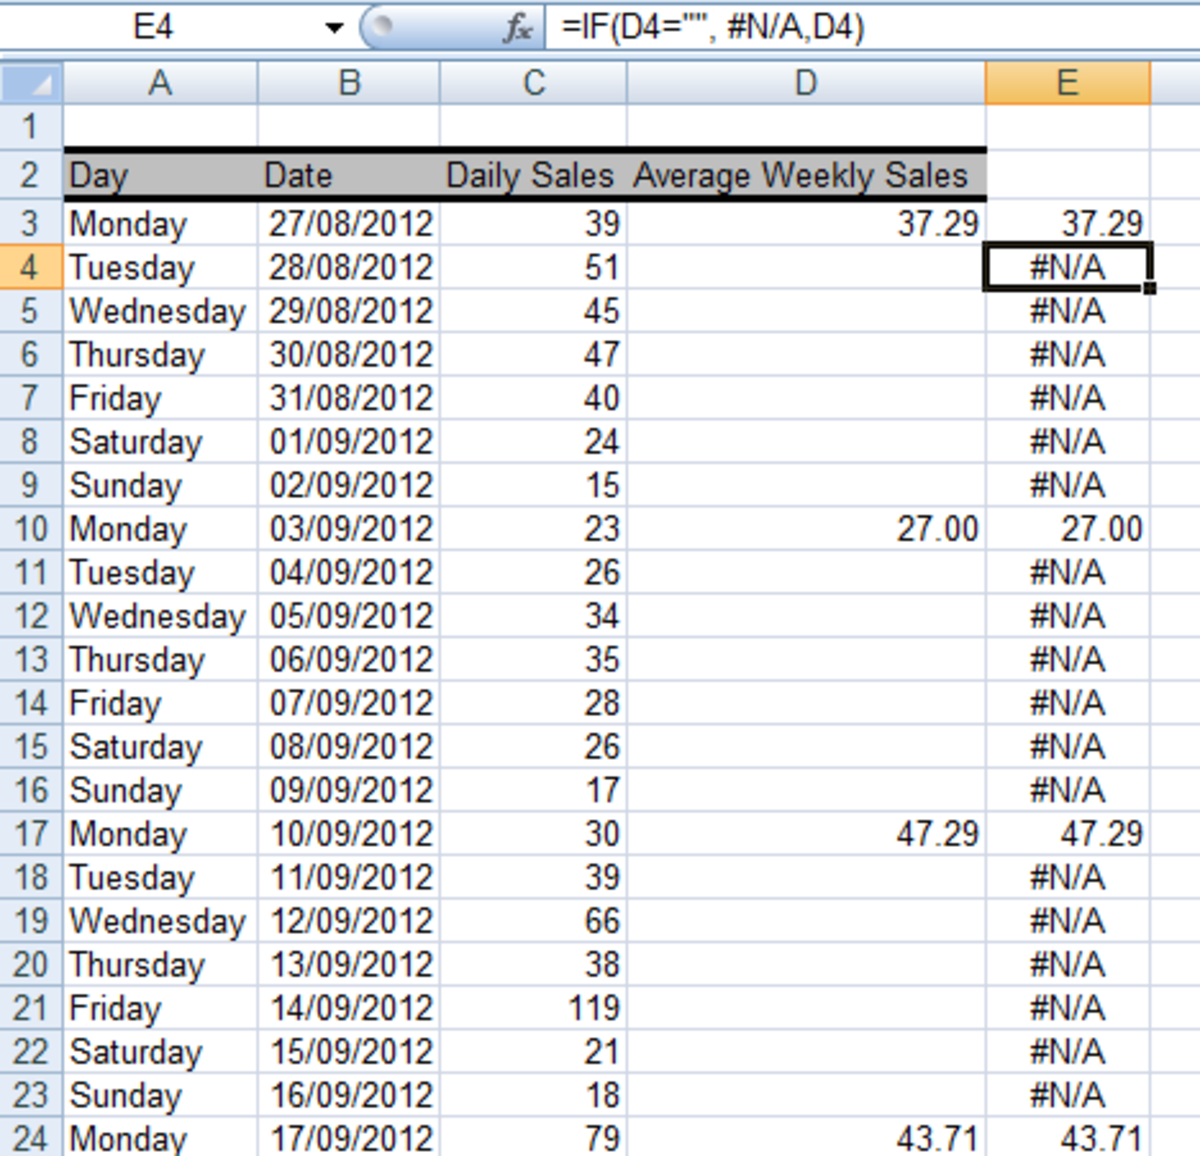 Ediblewildsus  Picturesque How To Get Excel  And  To Ignore Empty Cells In A Chart Or  With Interesting Using The If Function In A Formula To Convert Empty Cells To Na With Alluring How Much Is Excel For Mac Also Excel After School In Addition Sample Excel Spreadsheet Data And Excel Background Color Formula As Well As Professor Teaches Excel Additionally Conditional Excel Formula From Turbofuturecom With Ediblewildsus  Interesting How To Get Excel  And  To Ignore Empty Cells In A Chart Or  With Alluring Using The If Function In A Formula To Convert Empty Cells To Na And Picturesque How Much Is Excel For Mac Also Excel After School In Addition Sample Excel Spreadsheet Data From Turbofuturecom